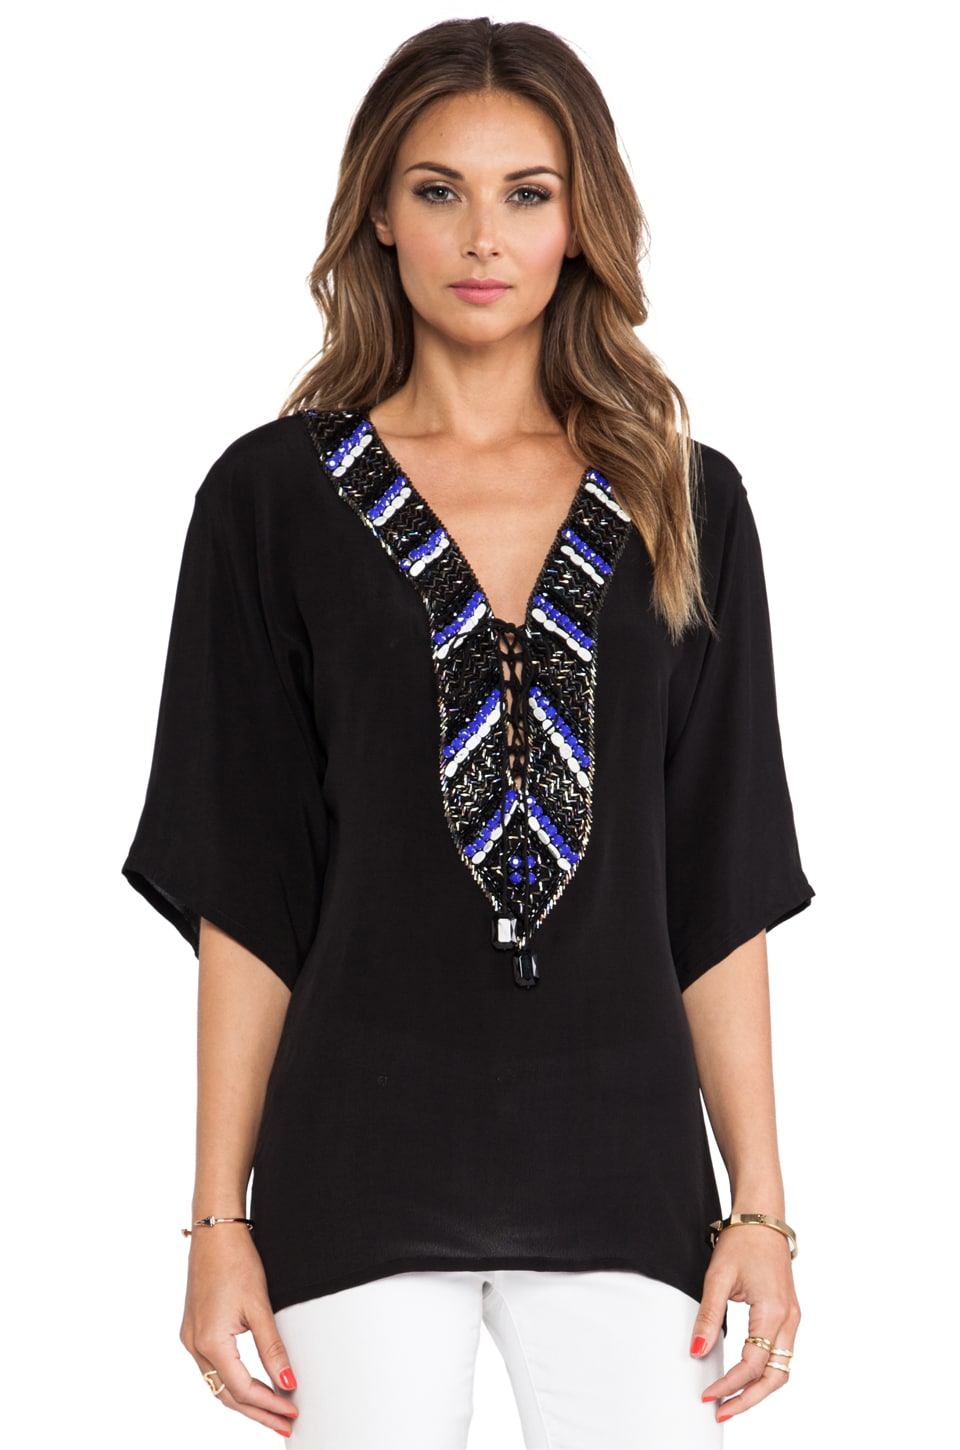 Karina Grimaldi Palmer Beaded Blouse in Black